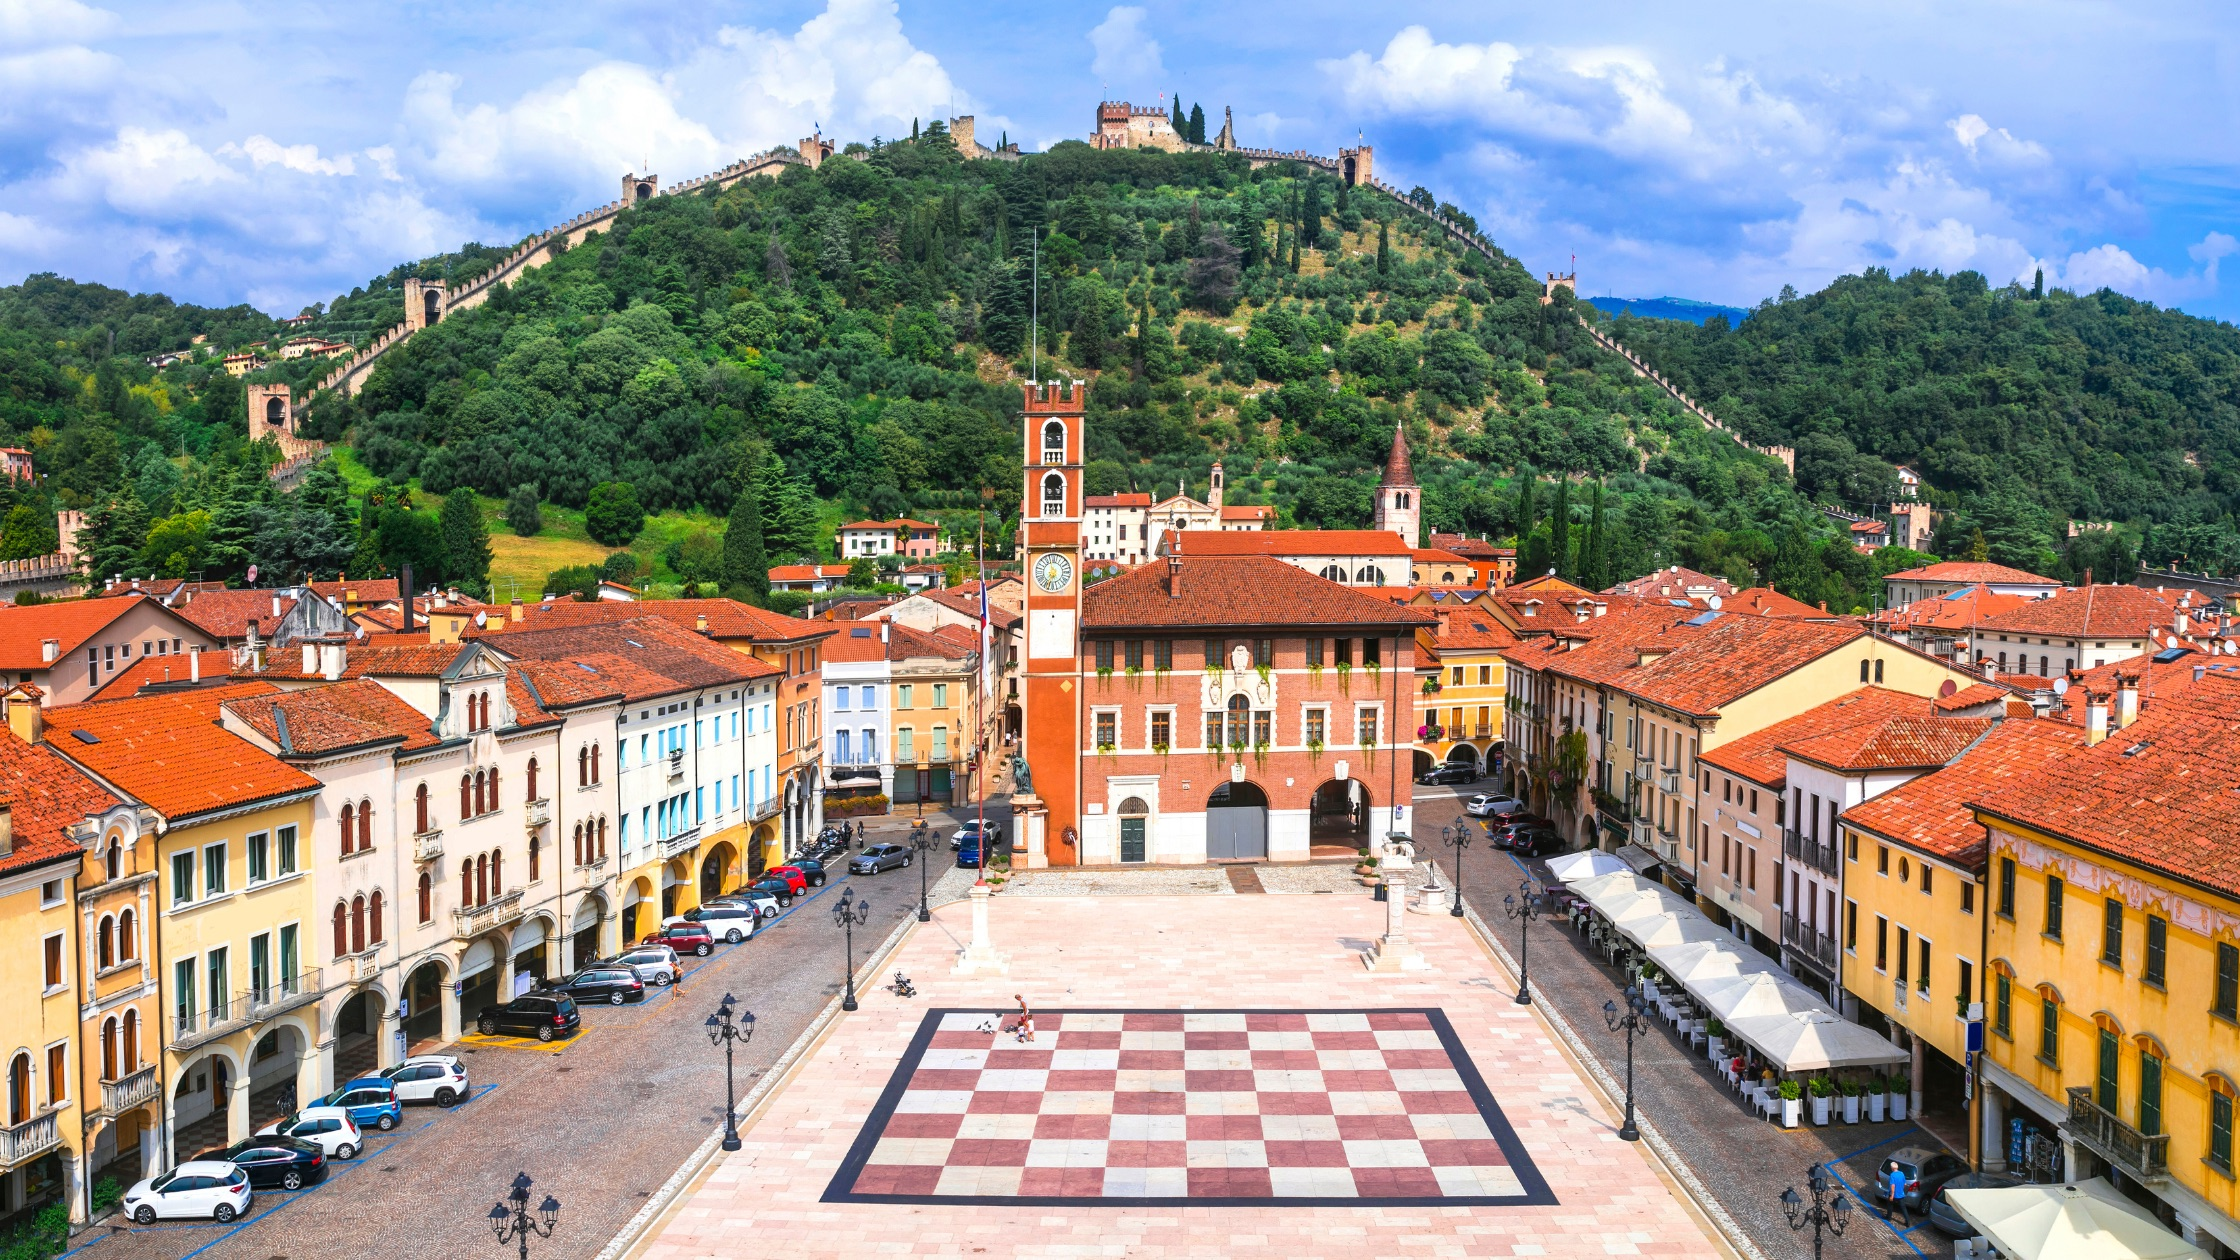 Marostica: The City of Chess